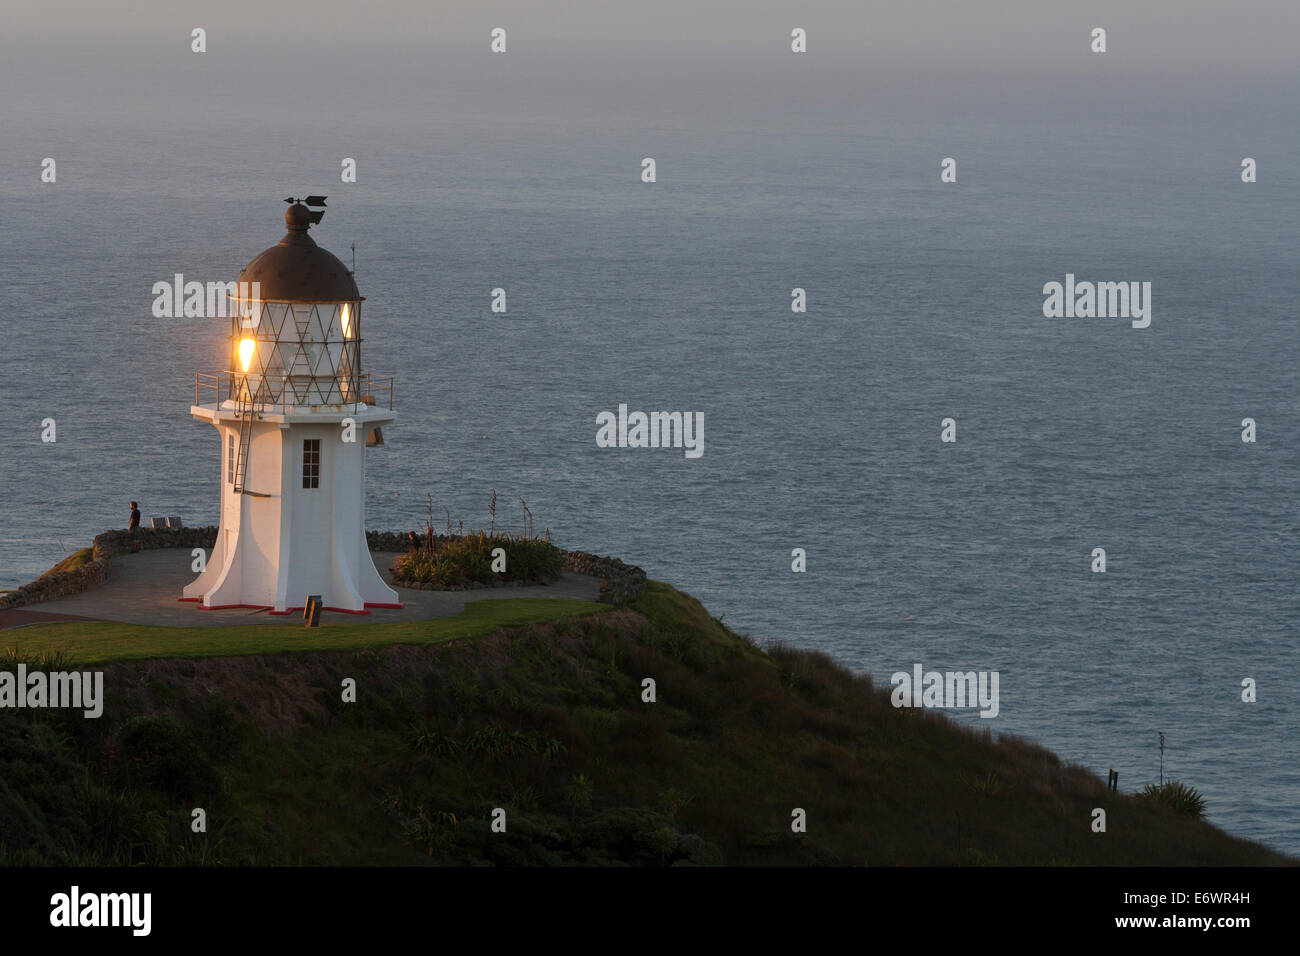 Lighthouse at Cape Reinga, Maori belief that the cape is where the spirits of the dead enter the underworld, most - Stock Image